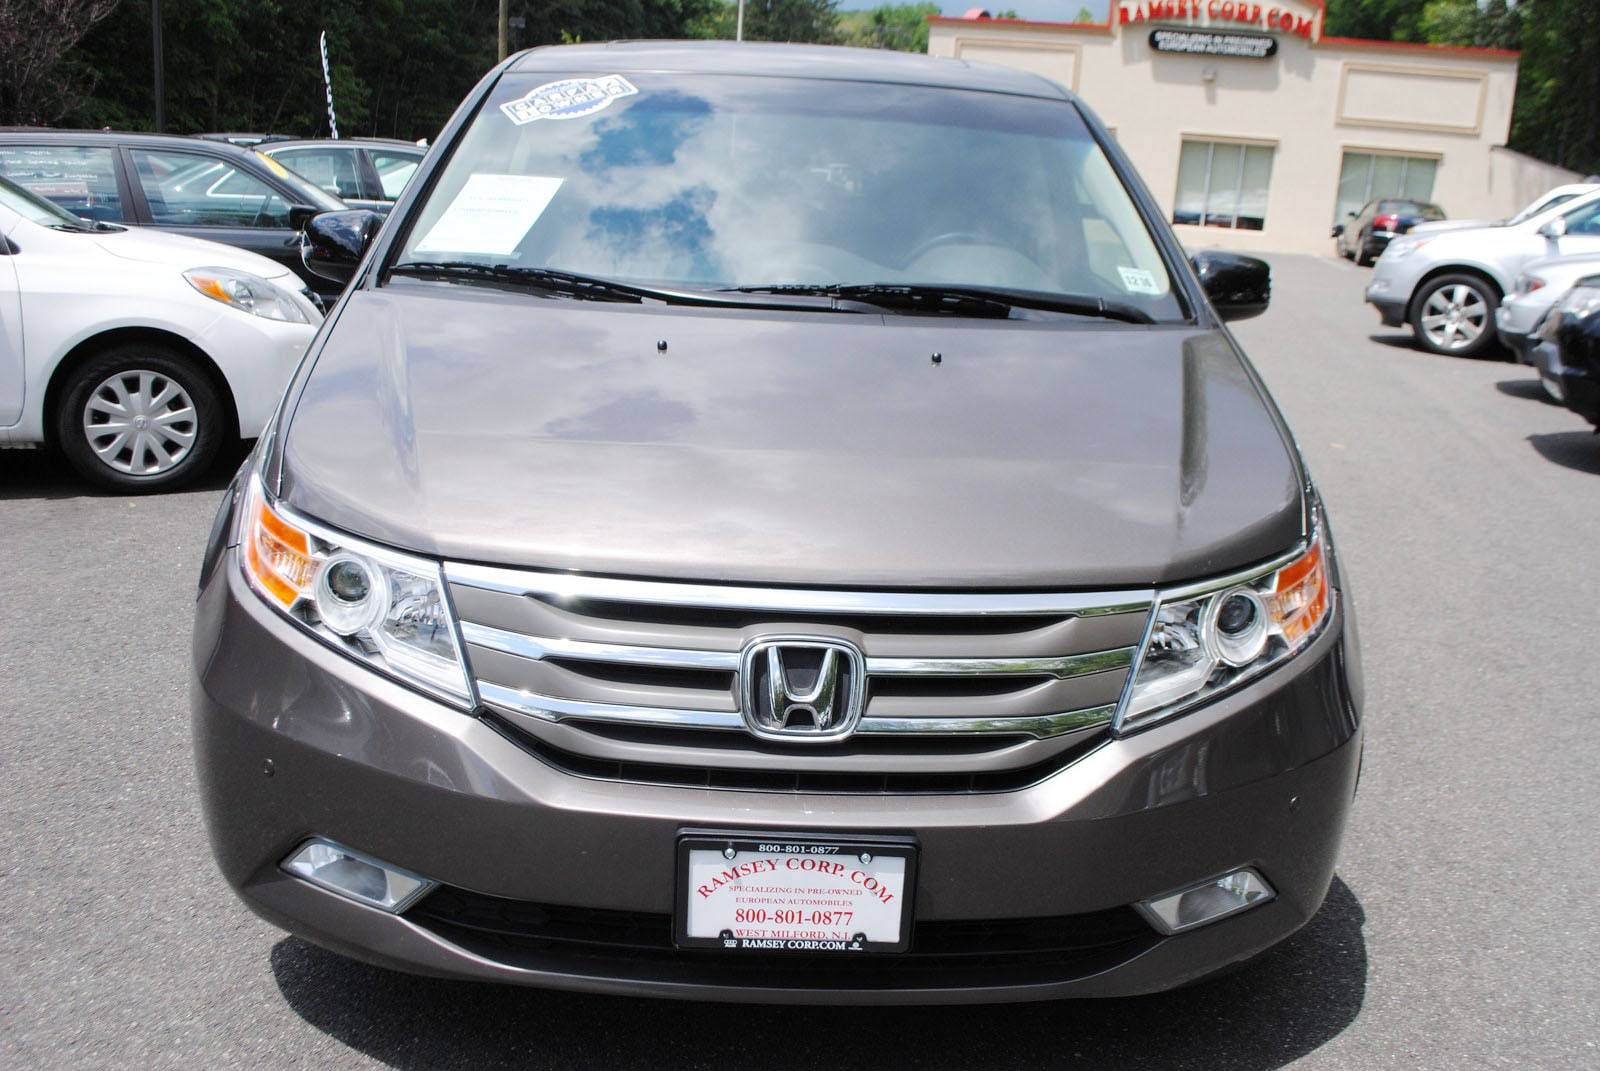 Used 2011 honda odyssey for sale west milford nj for Used honda odyssey nj